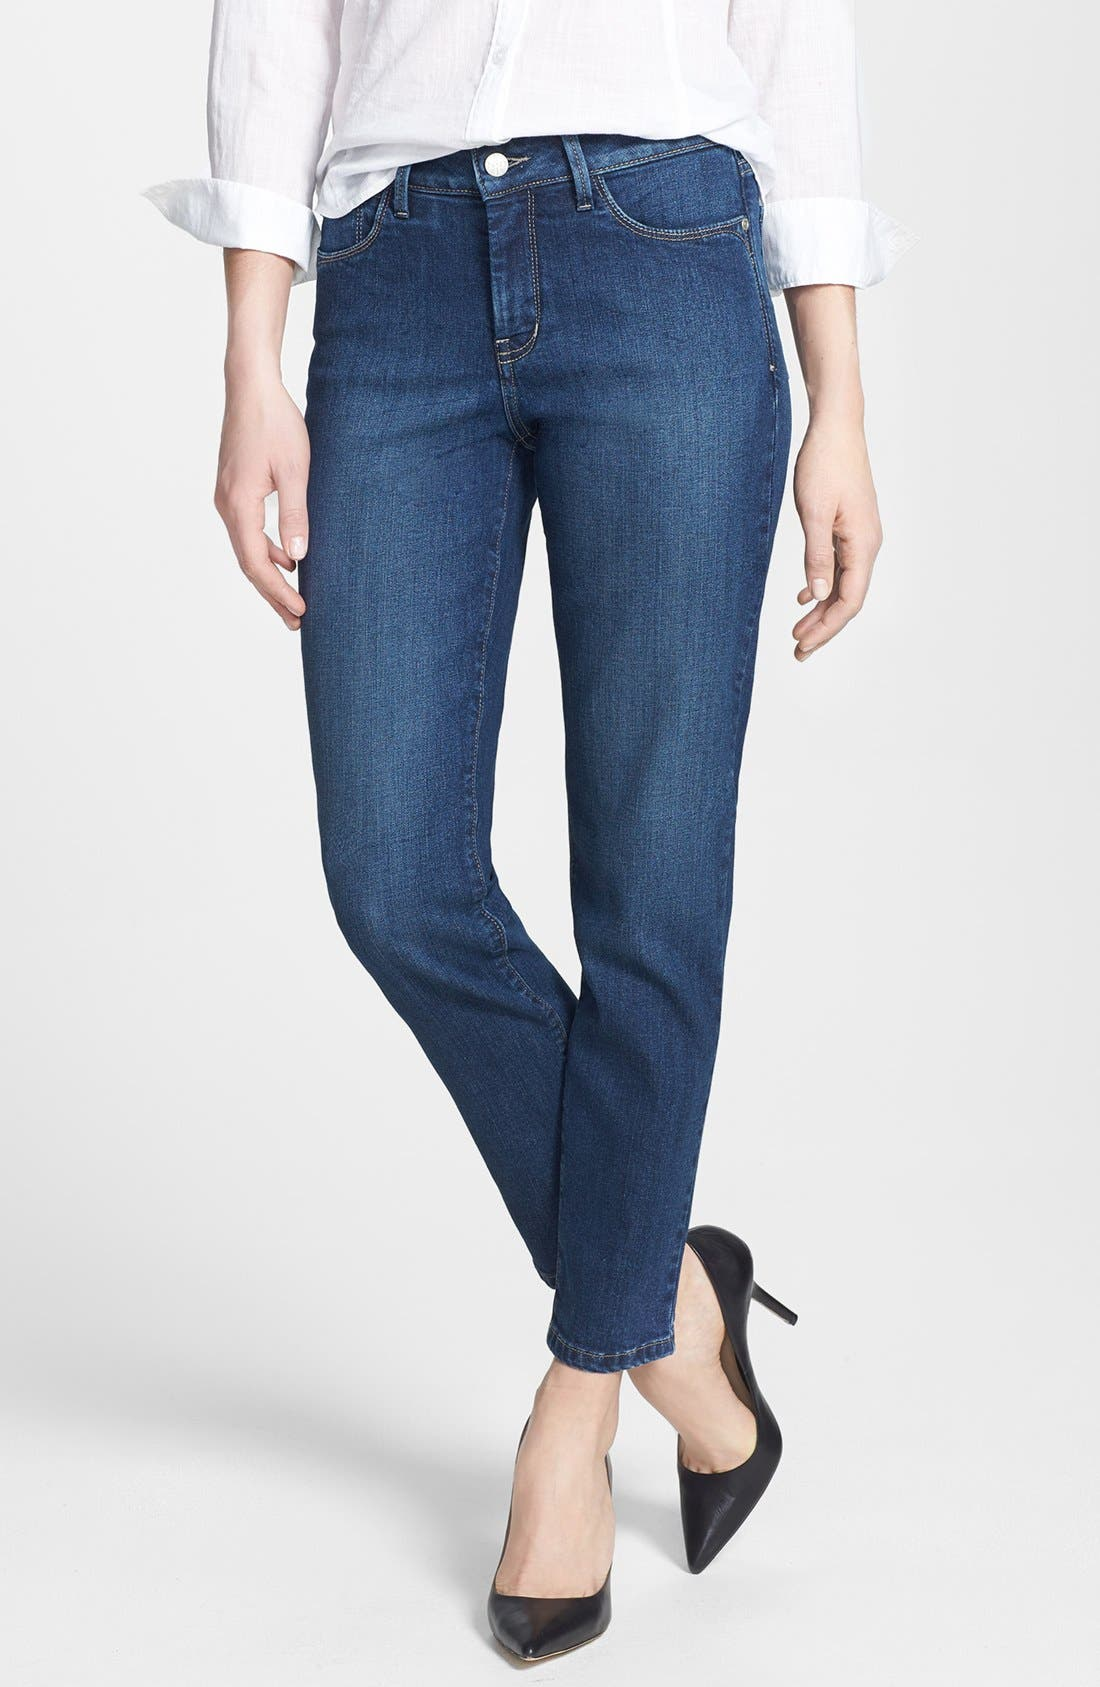 Alternate Image 1 Selected - NYDJ 'Clarissa' Fitted Stretch Ankle Skinny Jeans (Riverbank) (Regular & Petite)